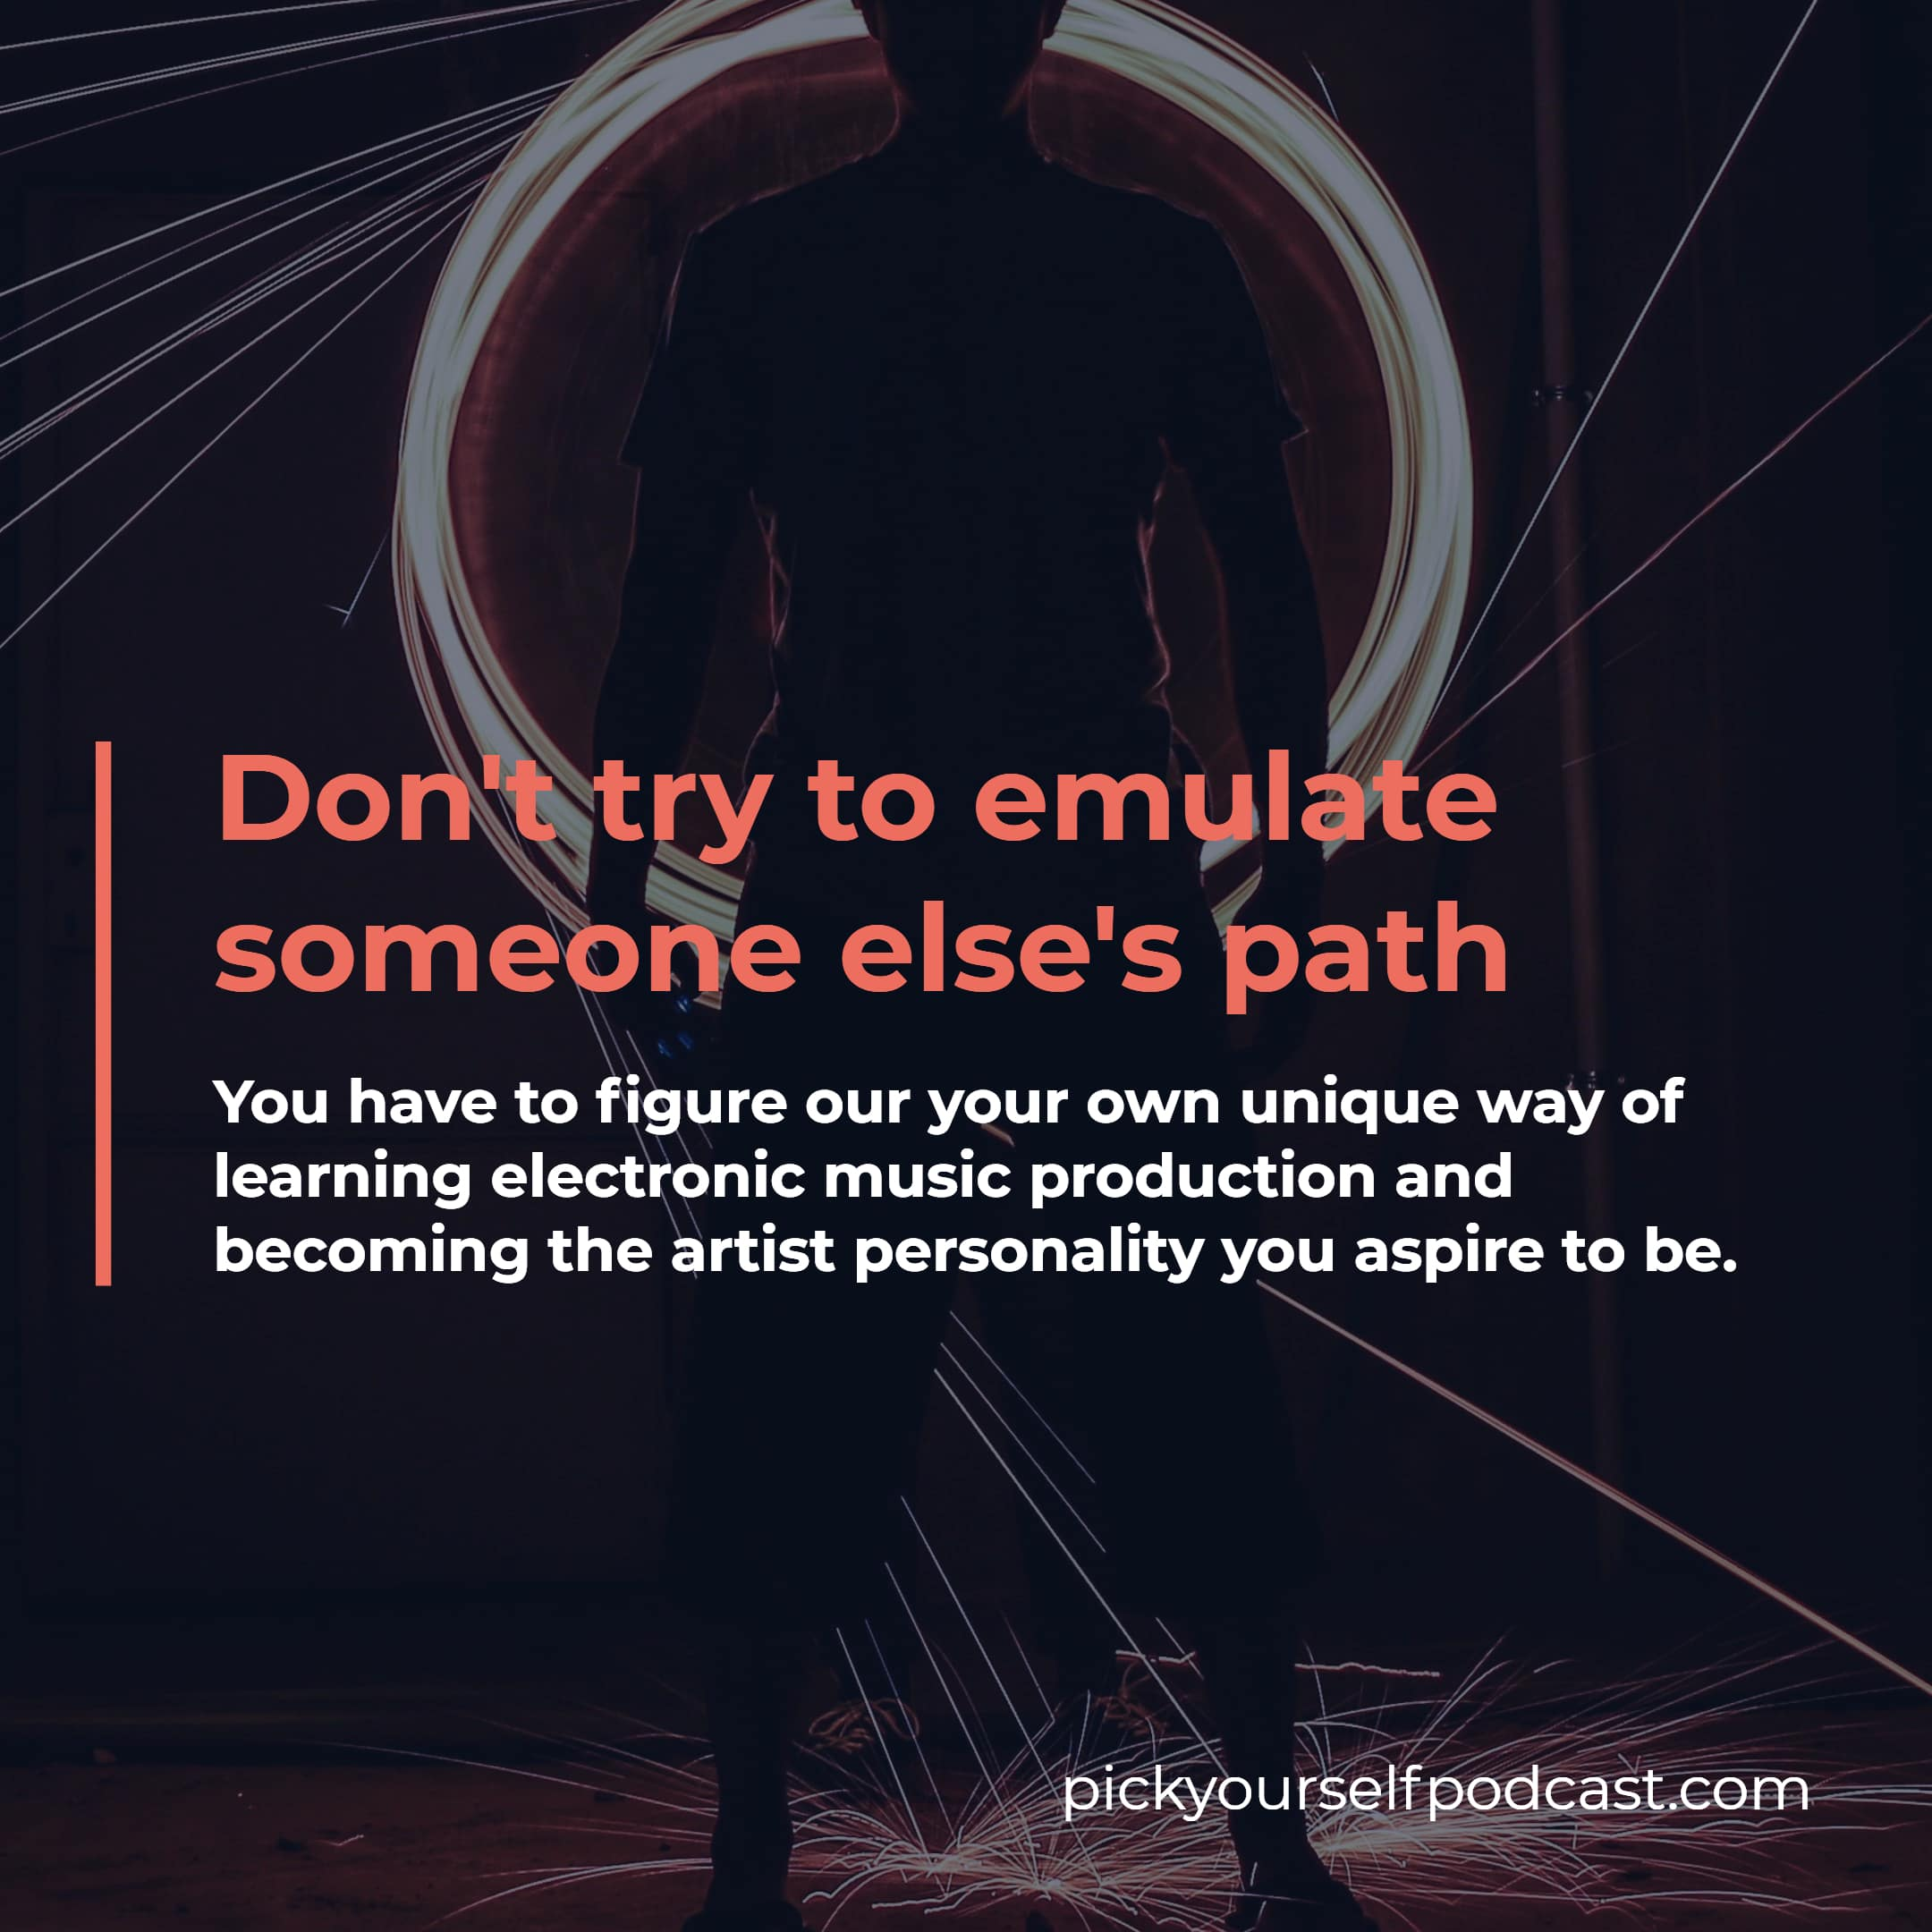 Study electronic music visual 01. It says: Don't try to emulate someone else's path.